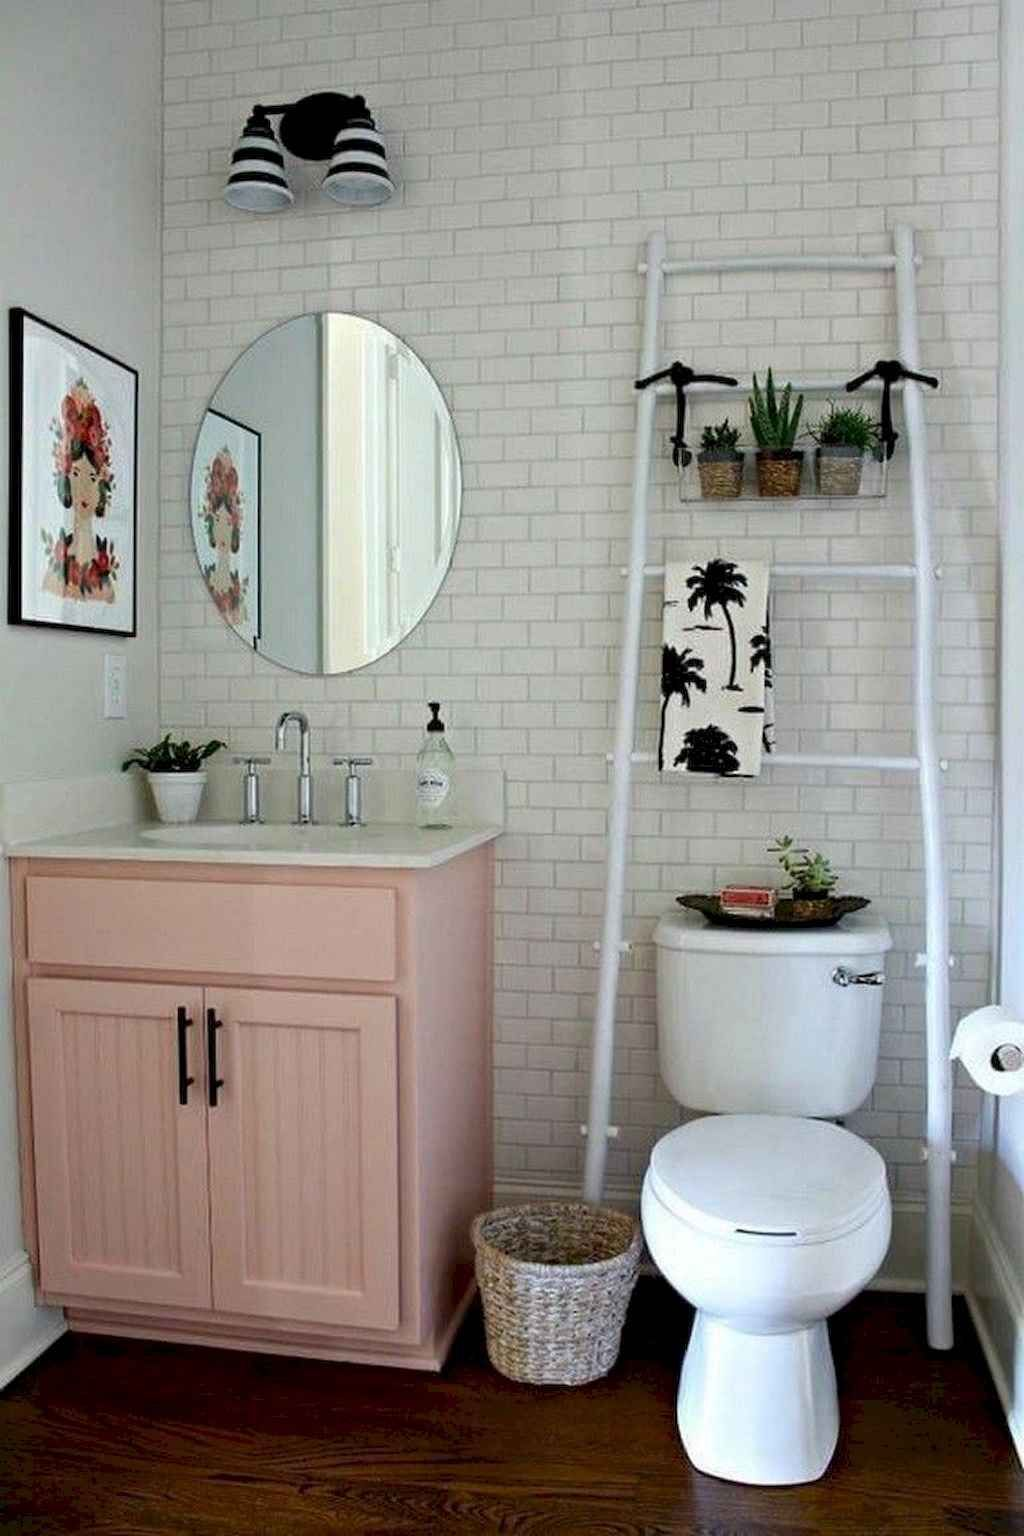 48 New Exciting Small Bathroom Design Ideas 27 Bathroom Design Exciting Ideas Bathroom Design Small Small Bathroom Design Bathroom Interior Design